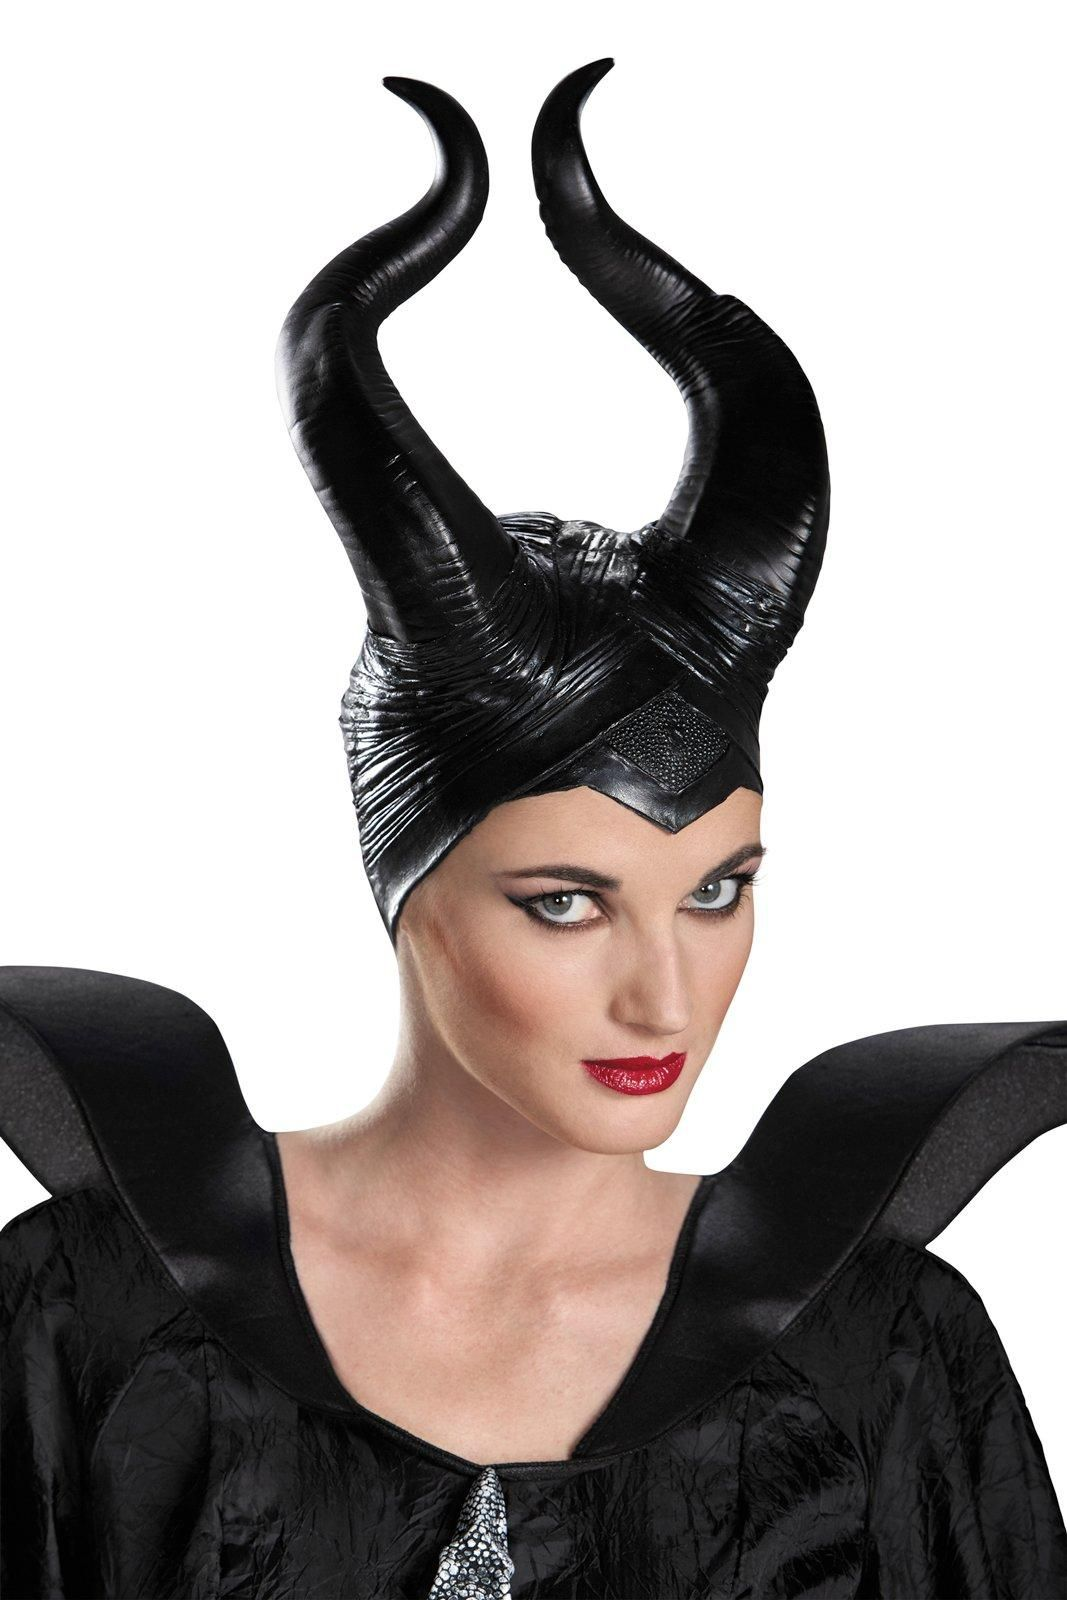 Disney maleficent vinyl horns deluxe headpiece disney maleficent disney maleficent vinyl horns deluxe headpiece from buycostumes baditri Gallery